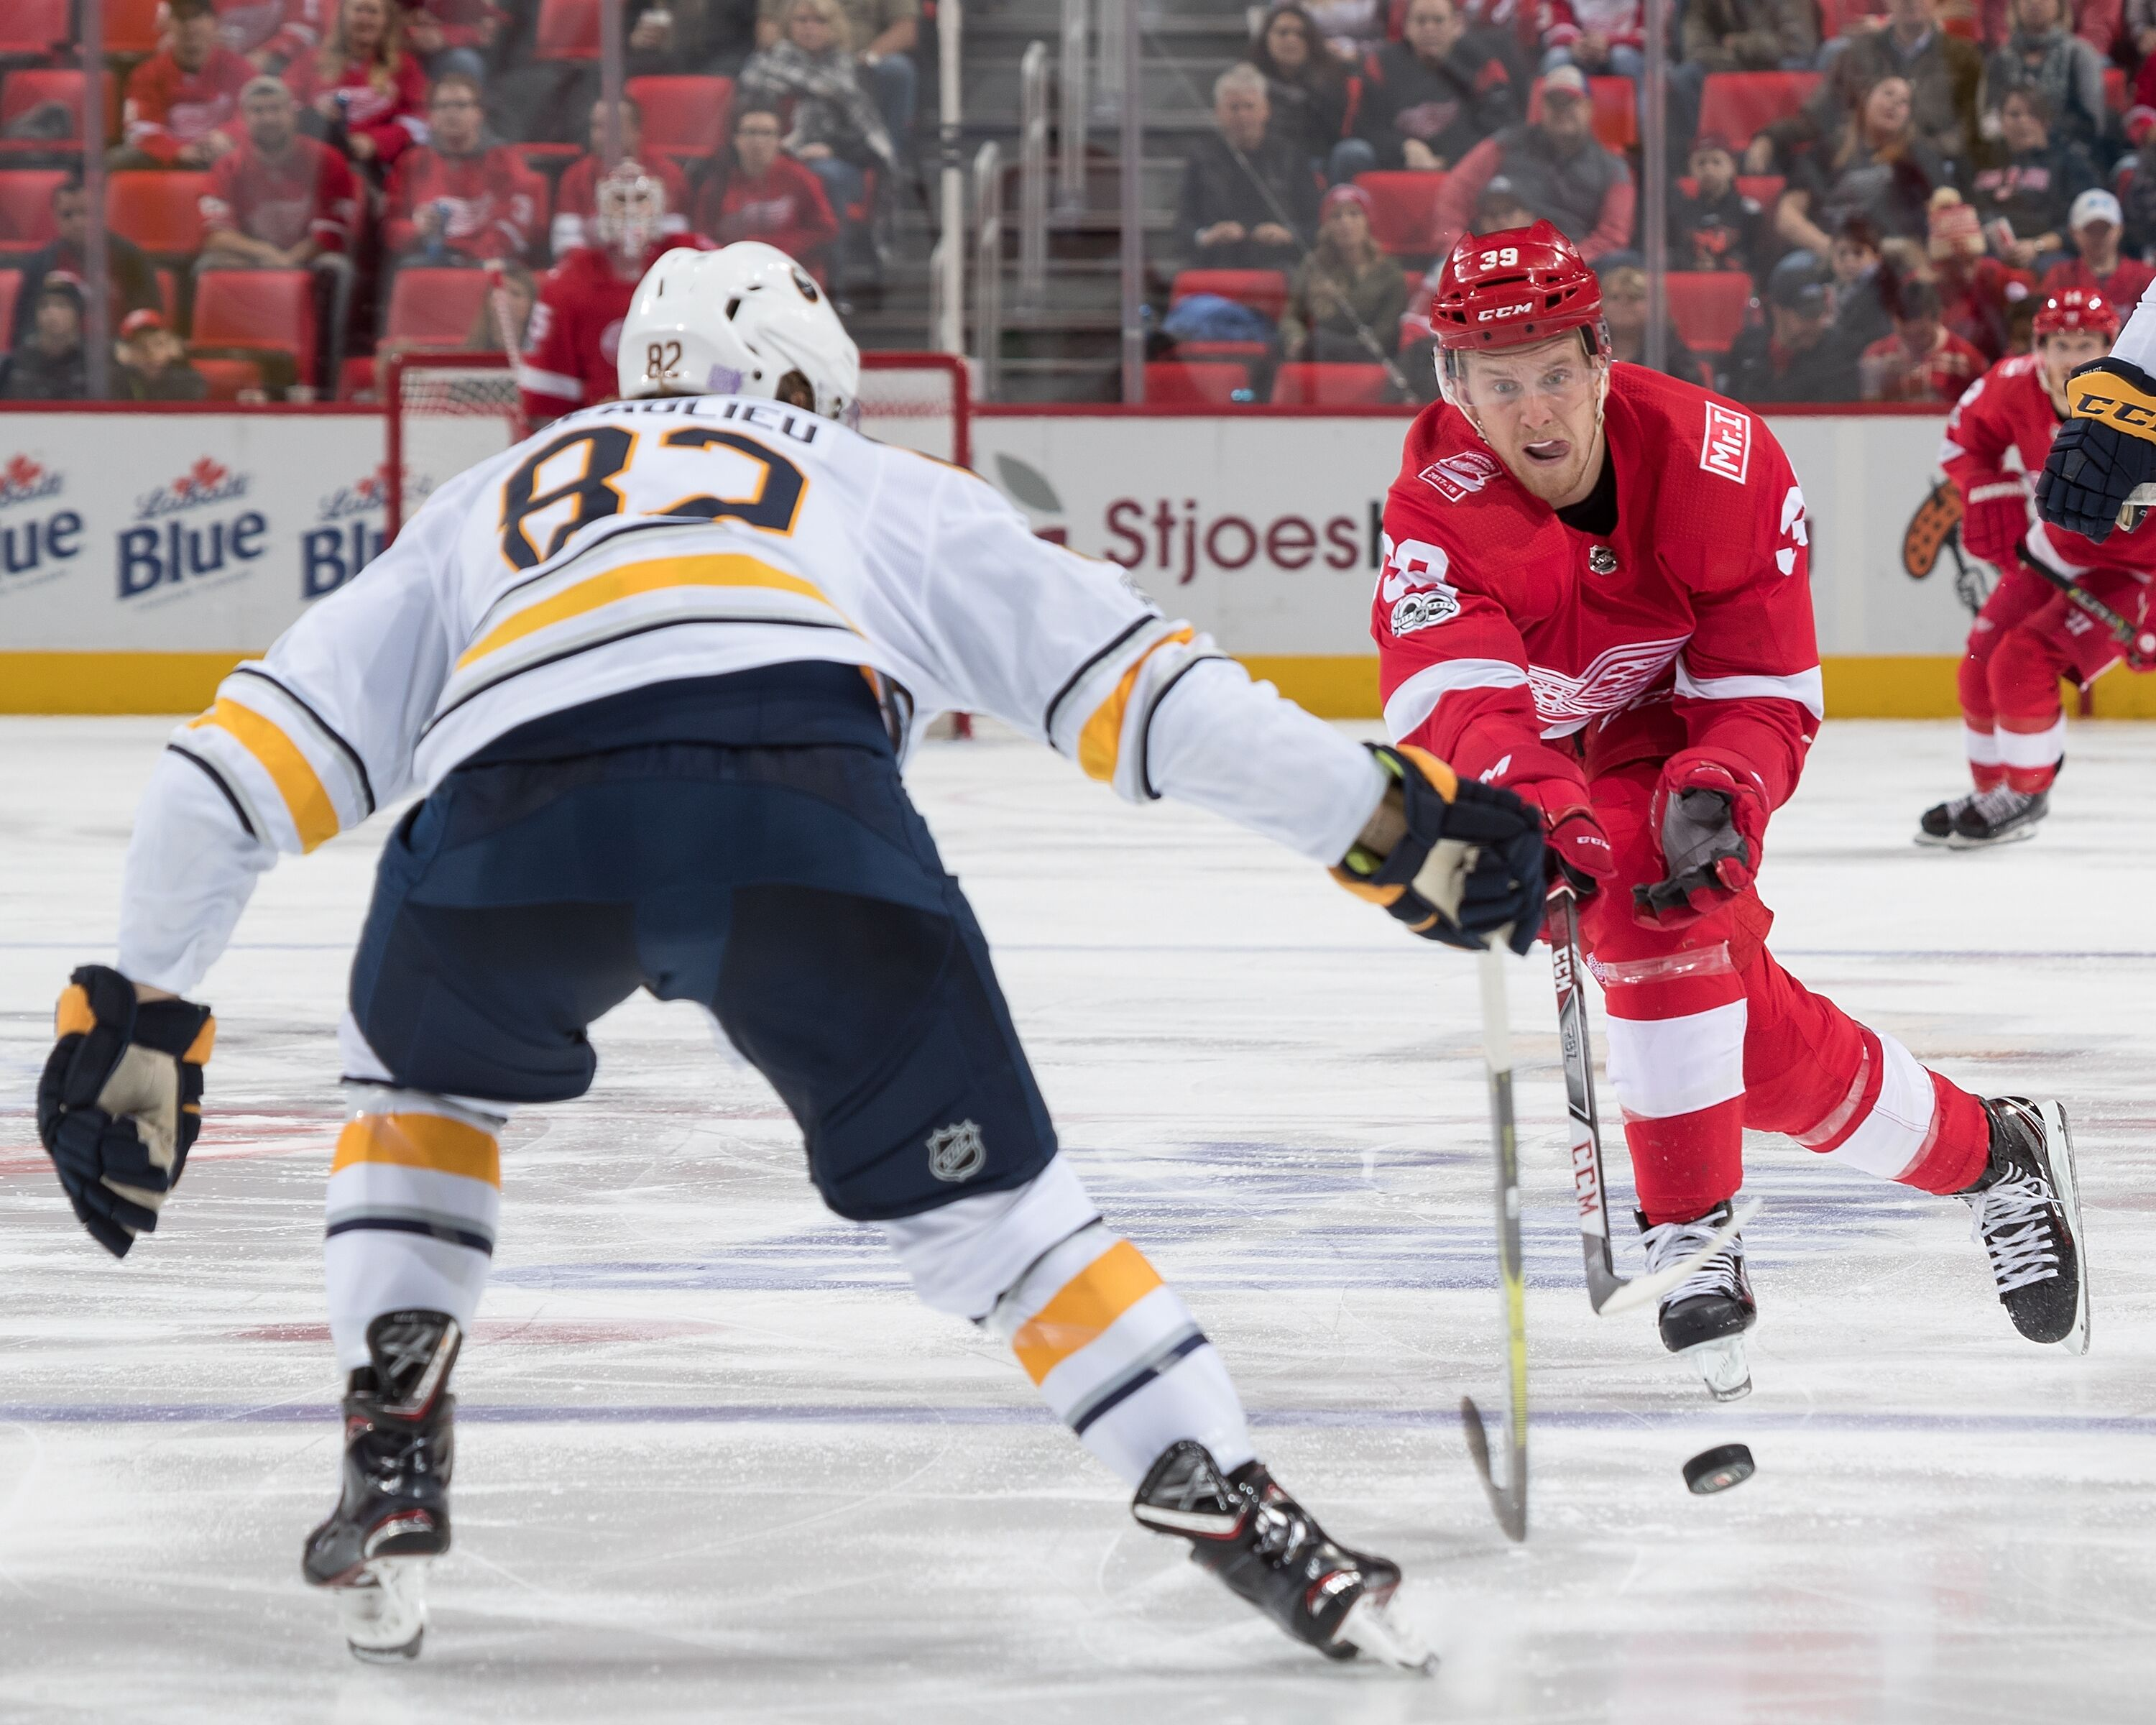 875526354-buffalo-sabres-v-detroit-red-wings.jpg